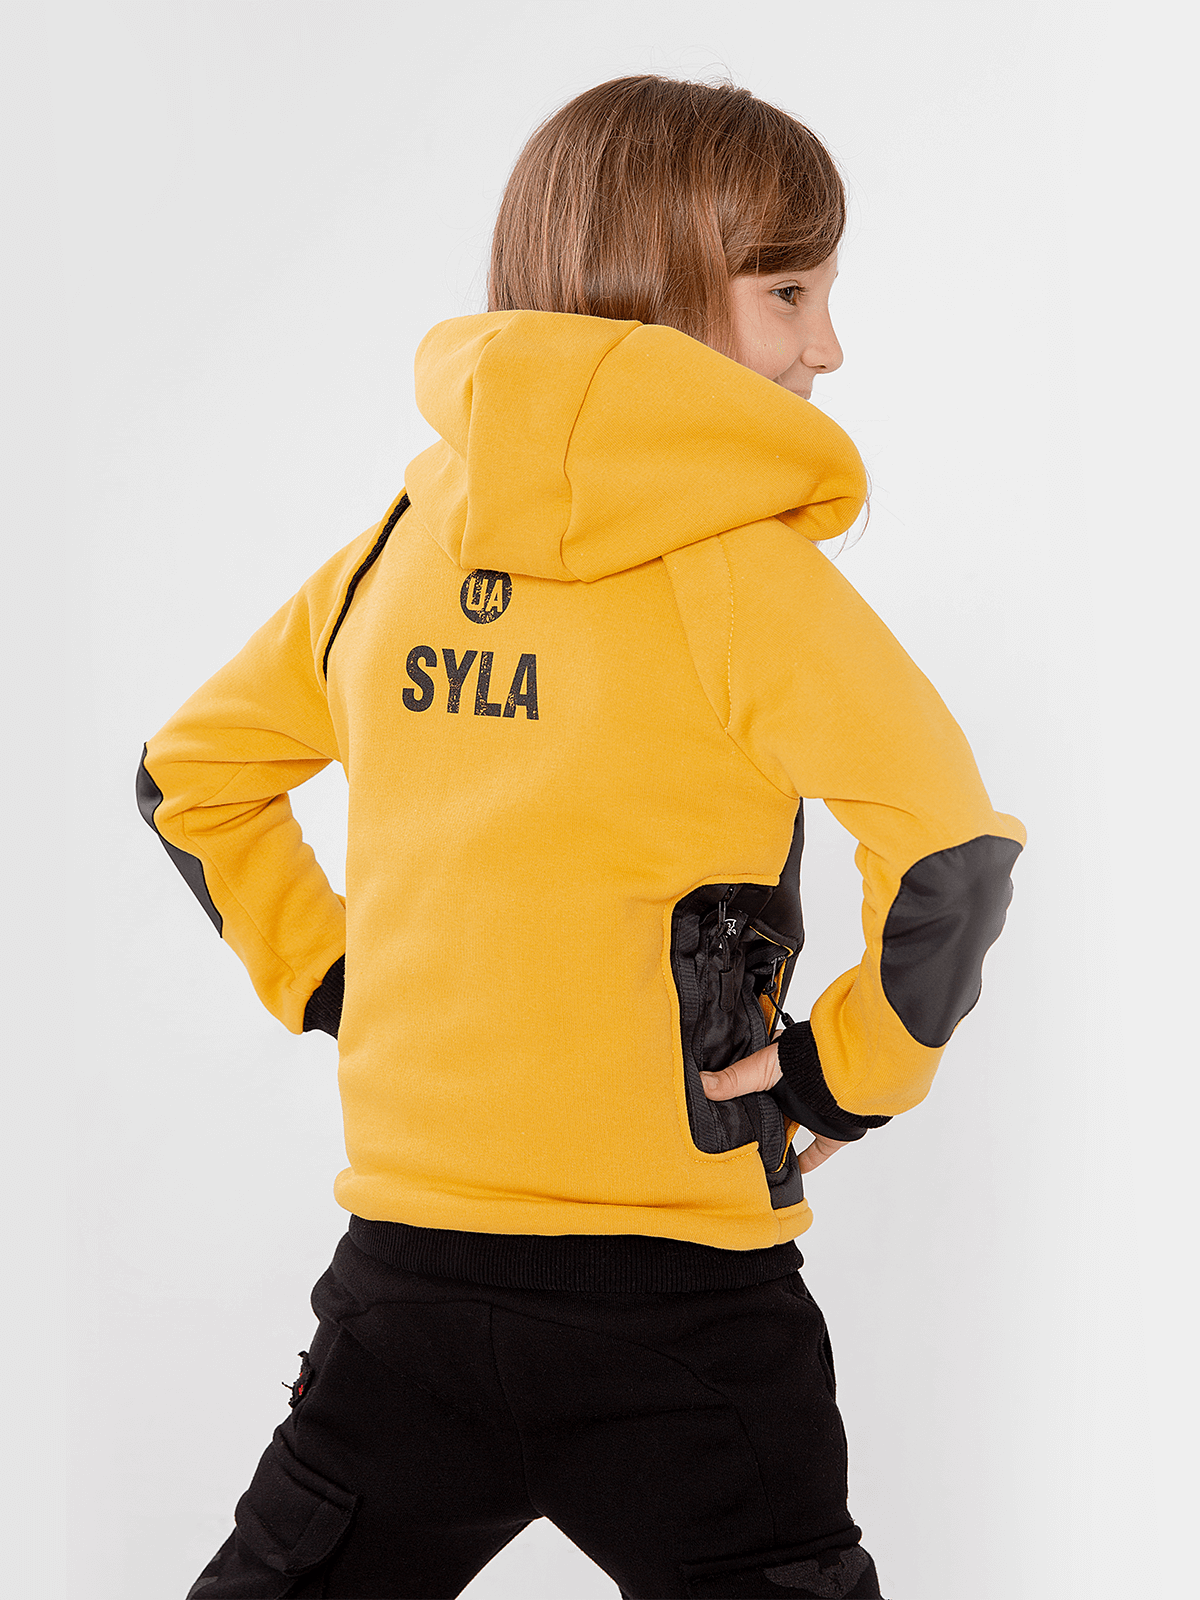 Kids Hoodie Syla. Color yellow.  Material of the inserts – oxford cloth, 100% polyester.